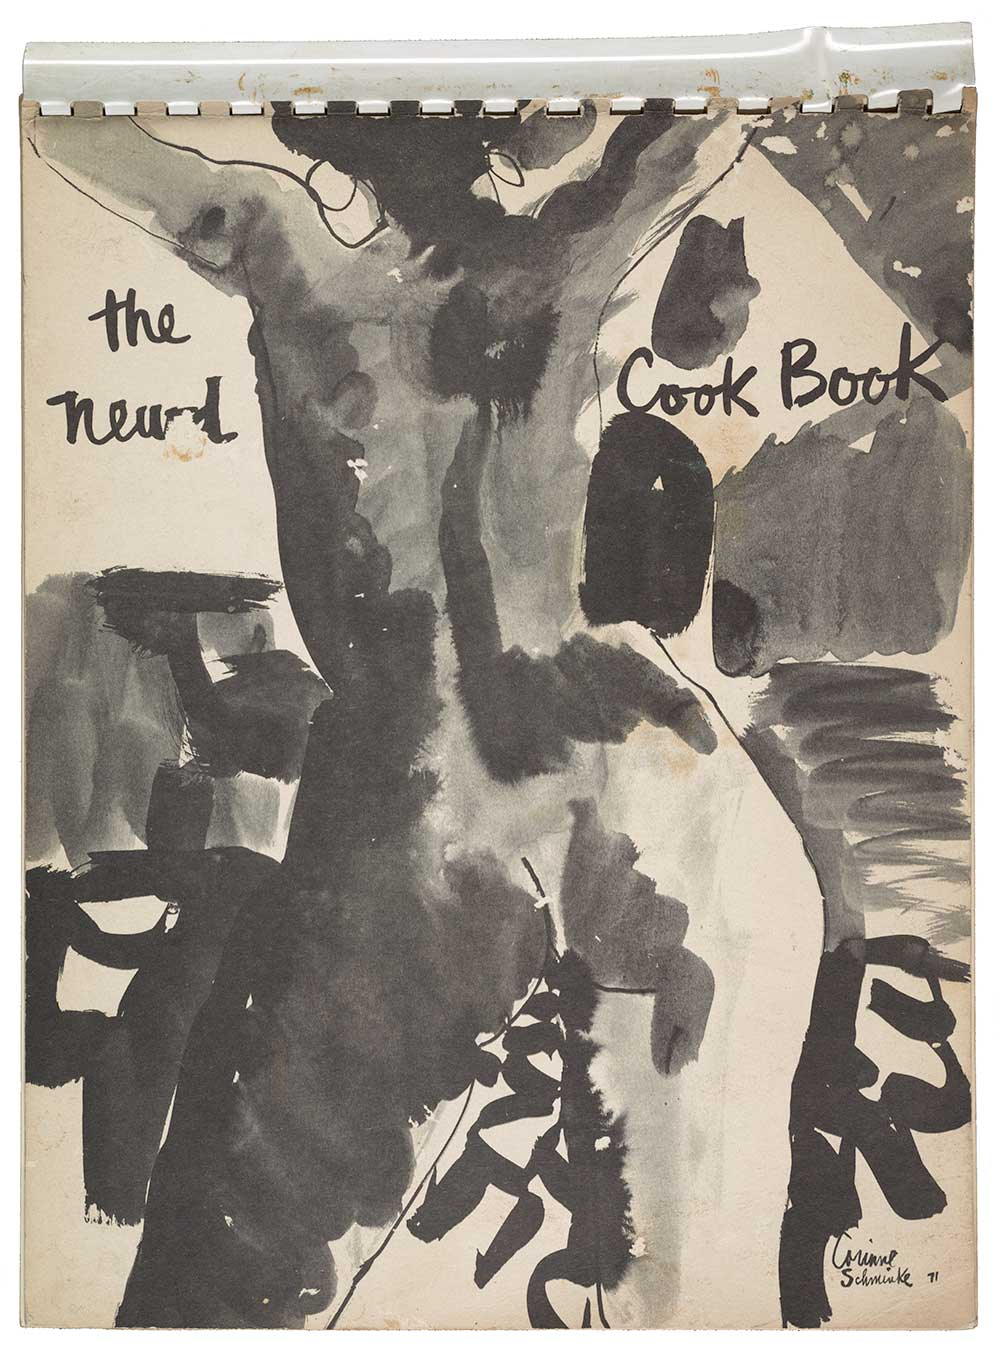 Cover of the Newd Cook Book